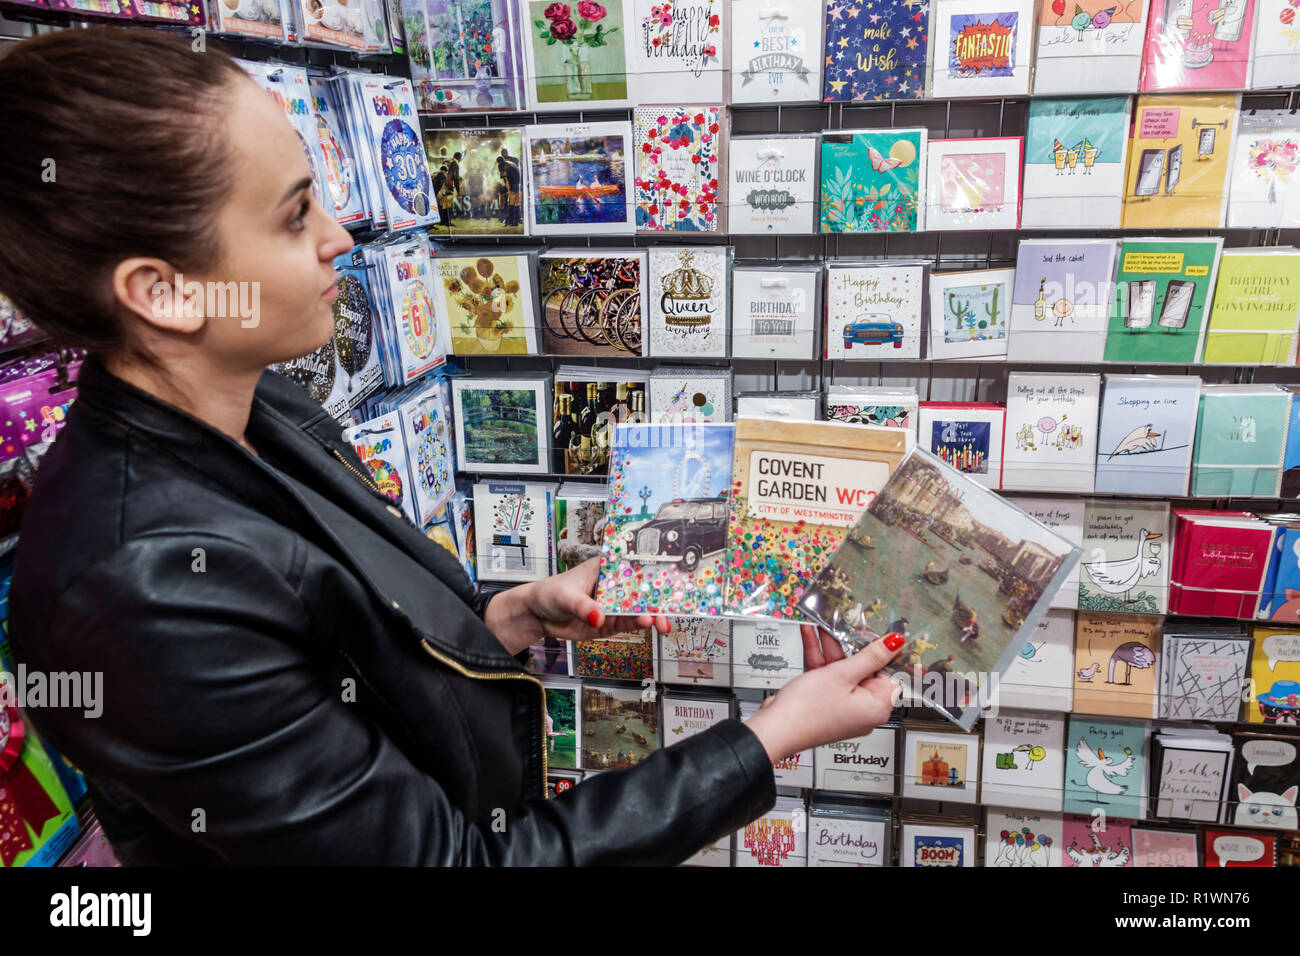 London England United Kingdom Great Britain Kensington gift shop stationery store shopping greeting cards woman choosing selecting display sale - Stock Image